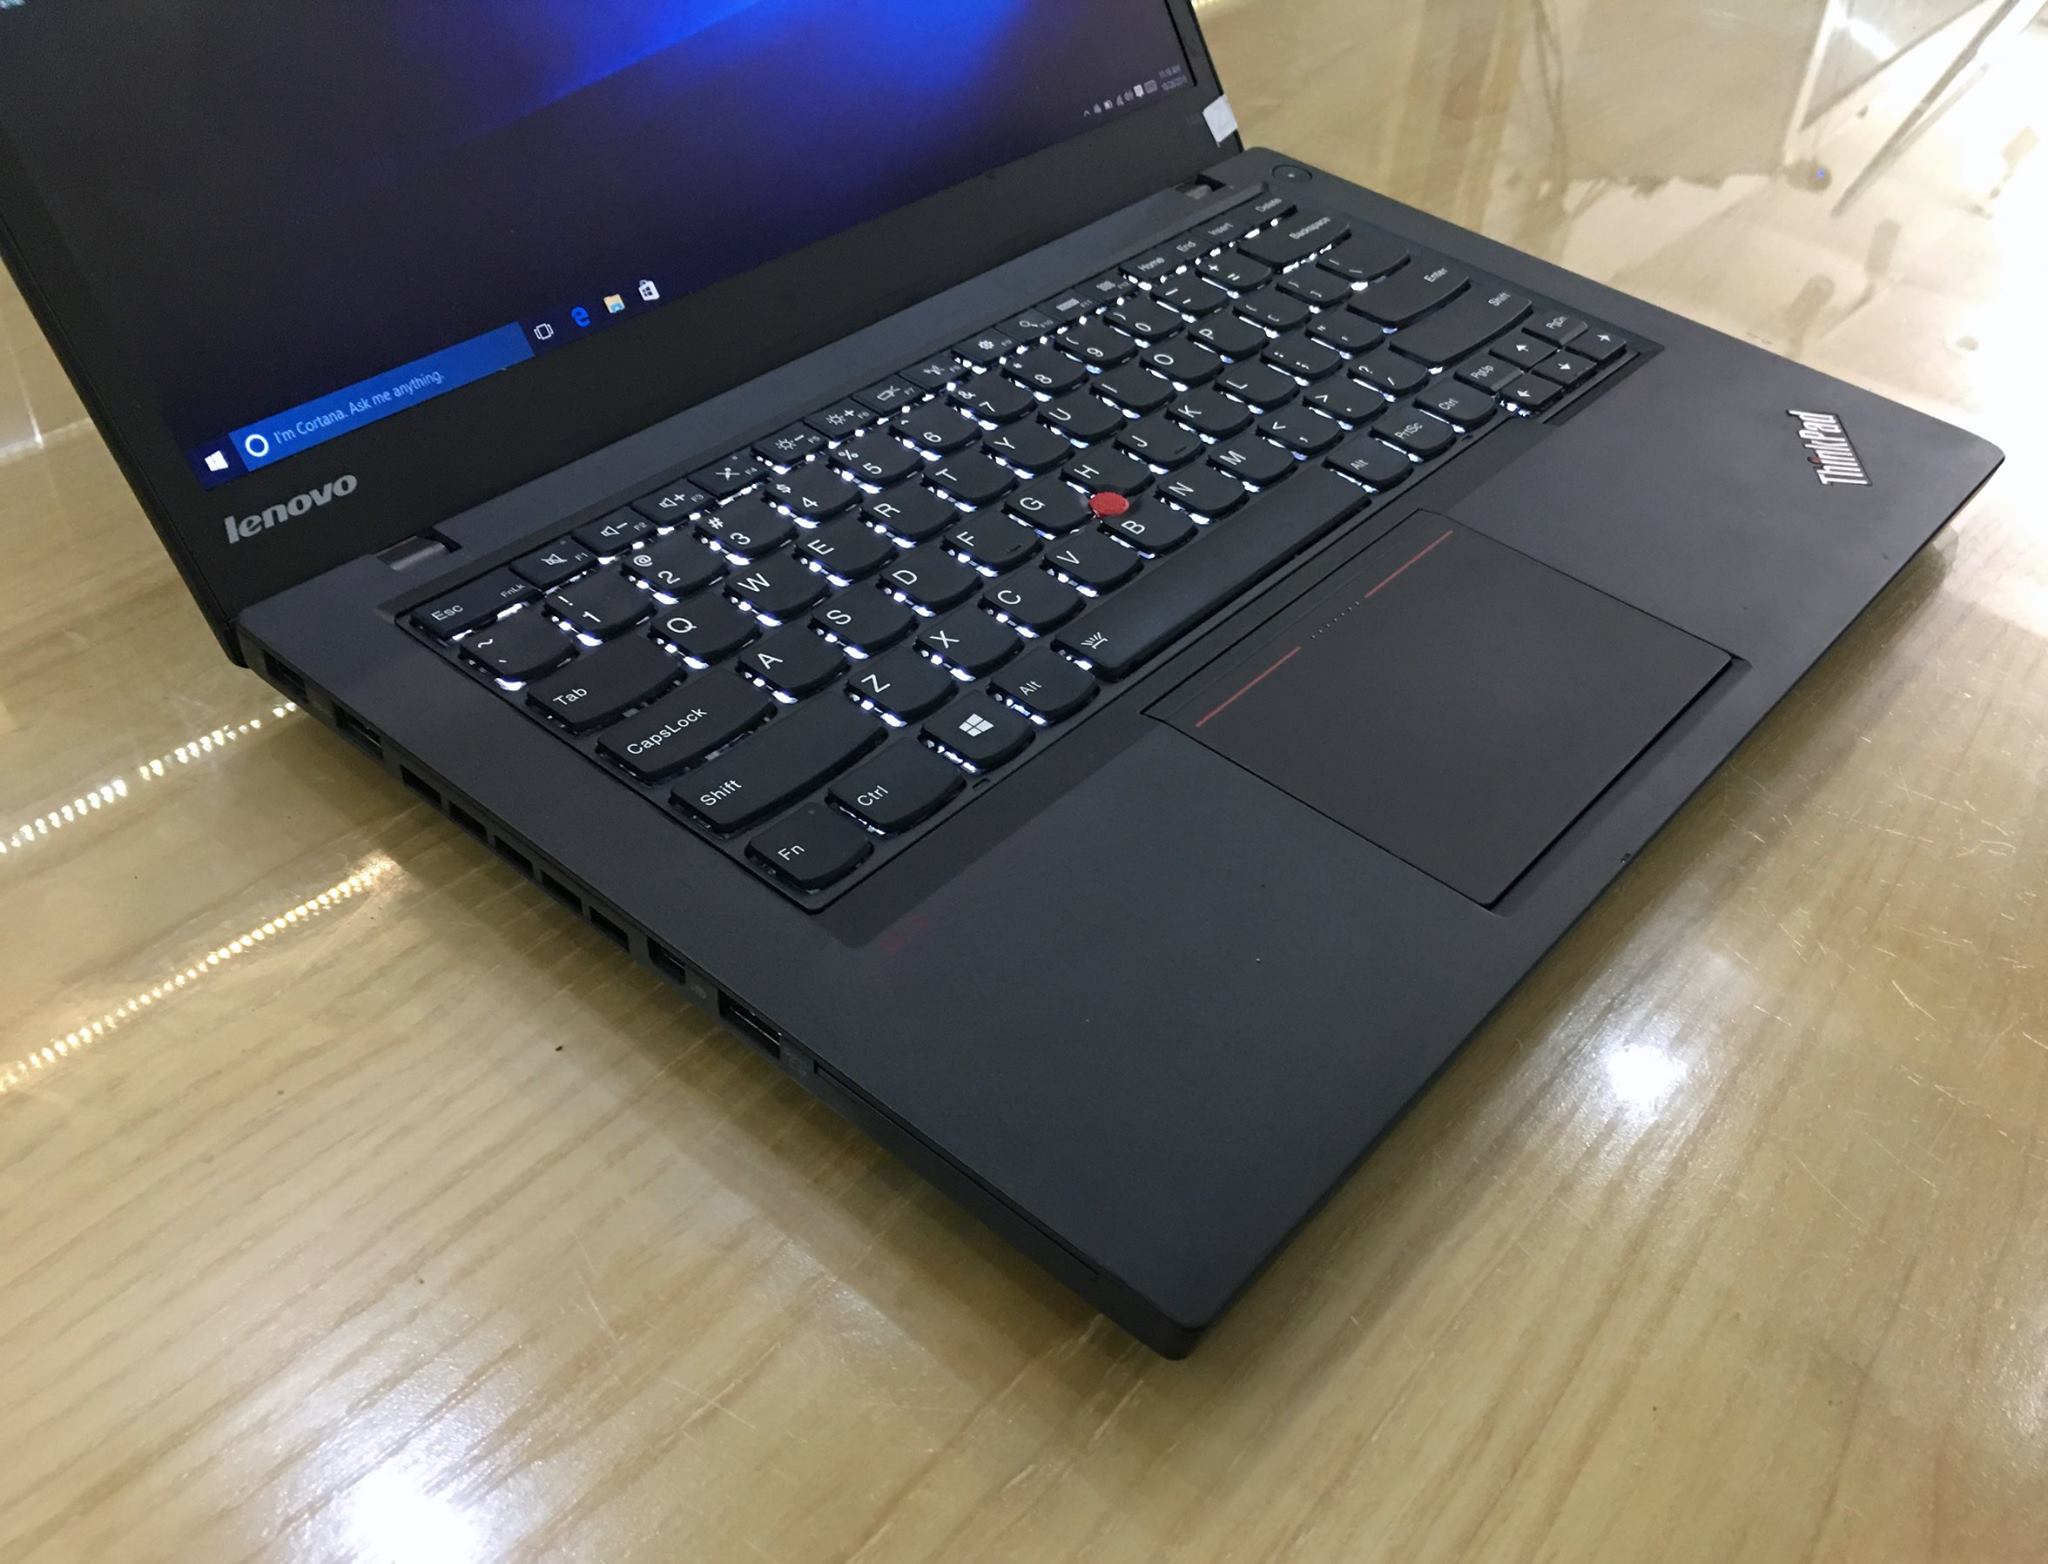 Laptop Lenovo thinkpad T440S-9.jpg